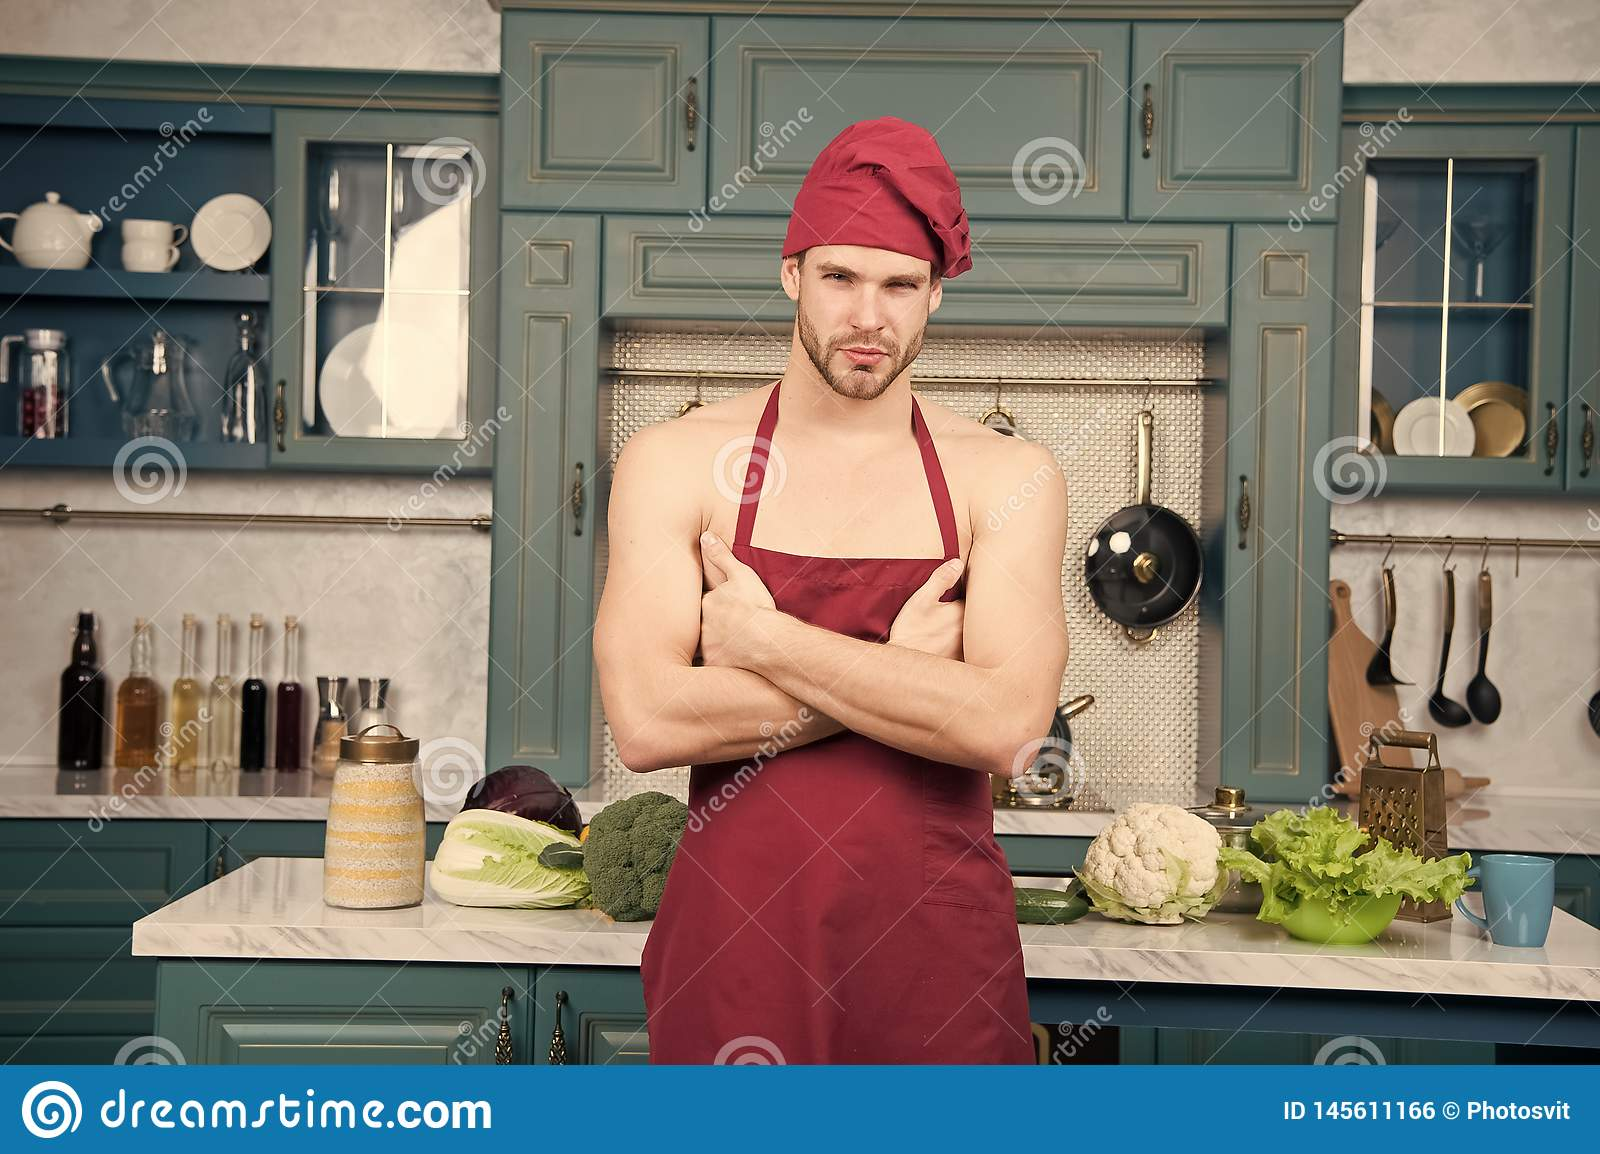 Nude guys in cooking apron